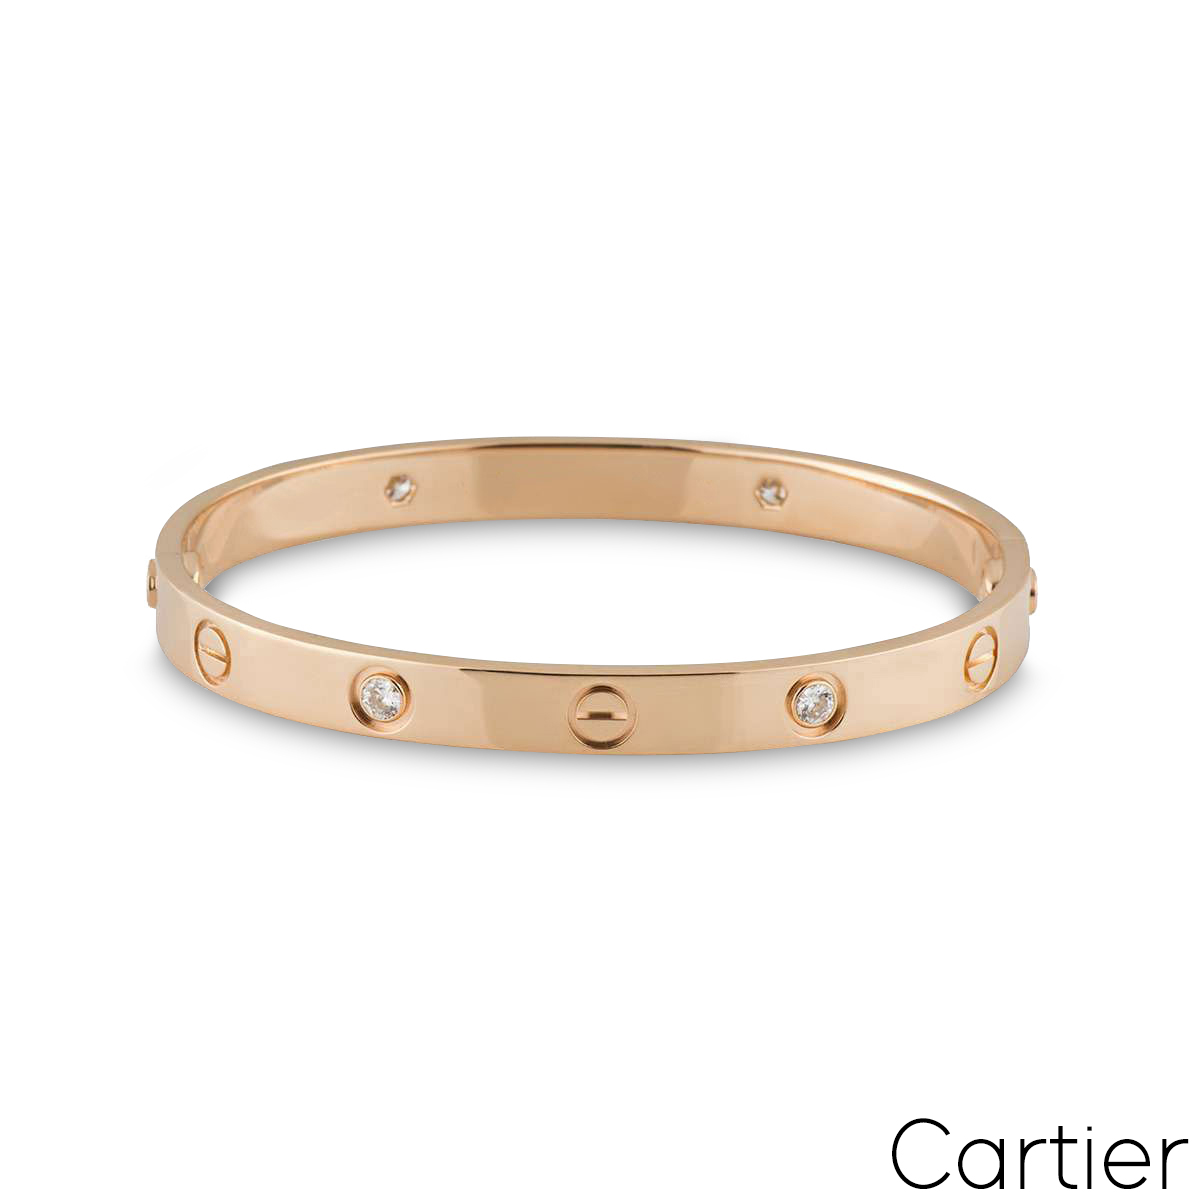 Cartier Love Bracelet Rose Gold Half Diamond Size 16 B6036016